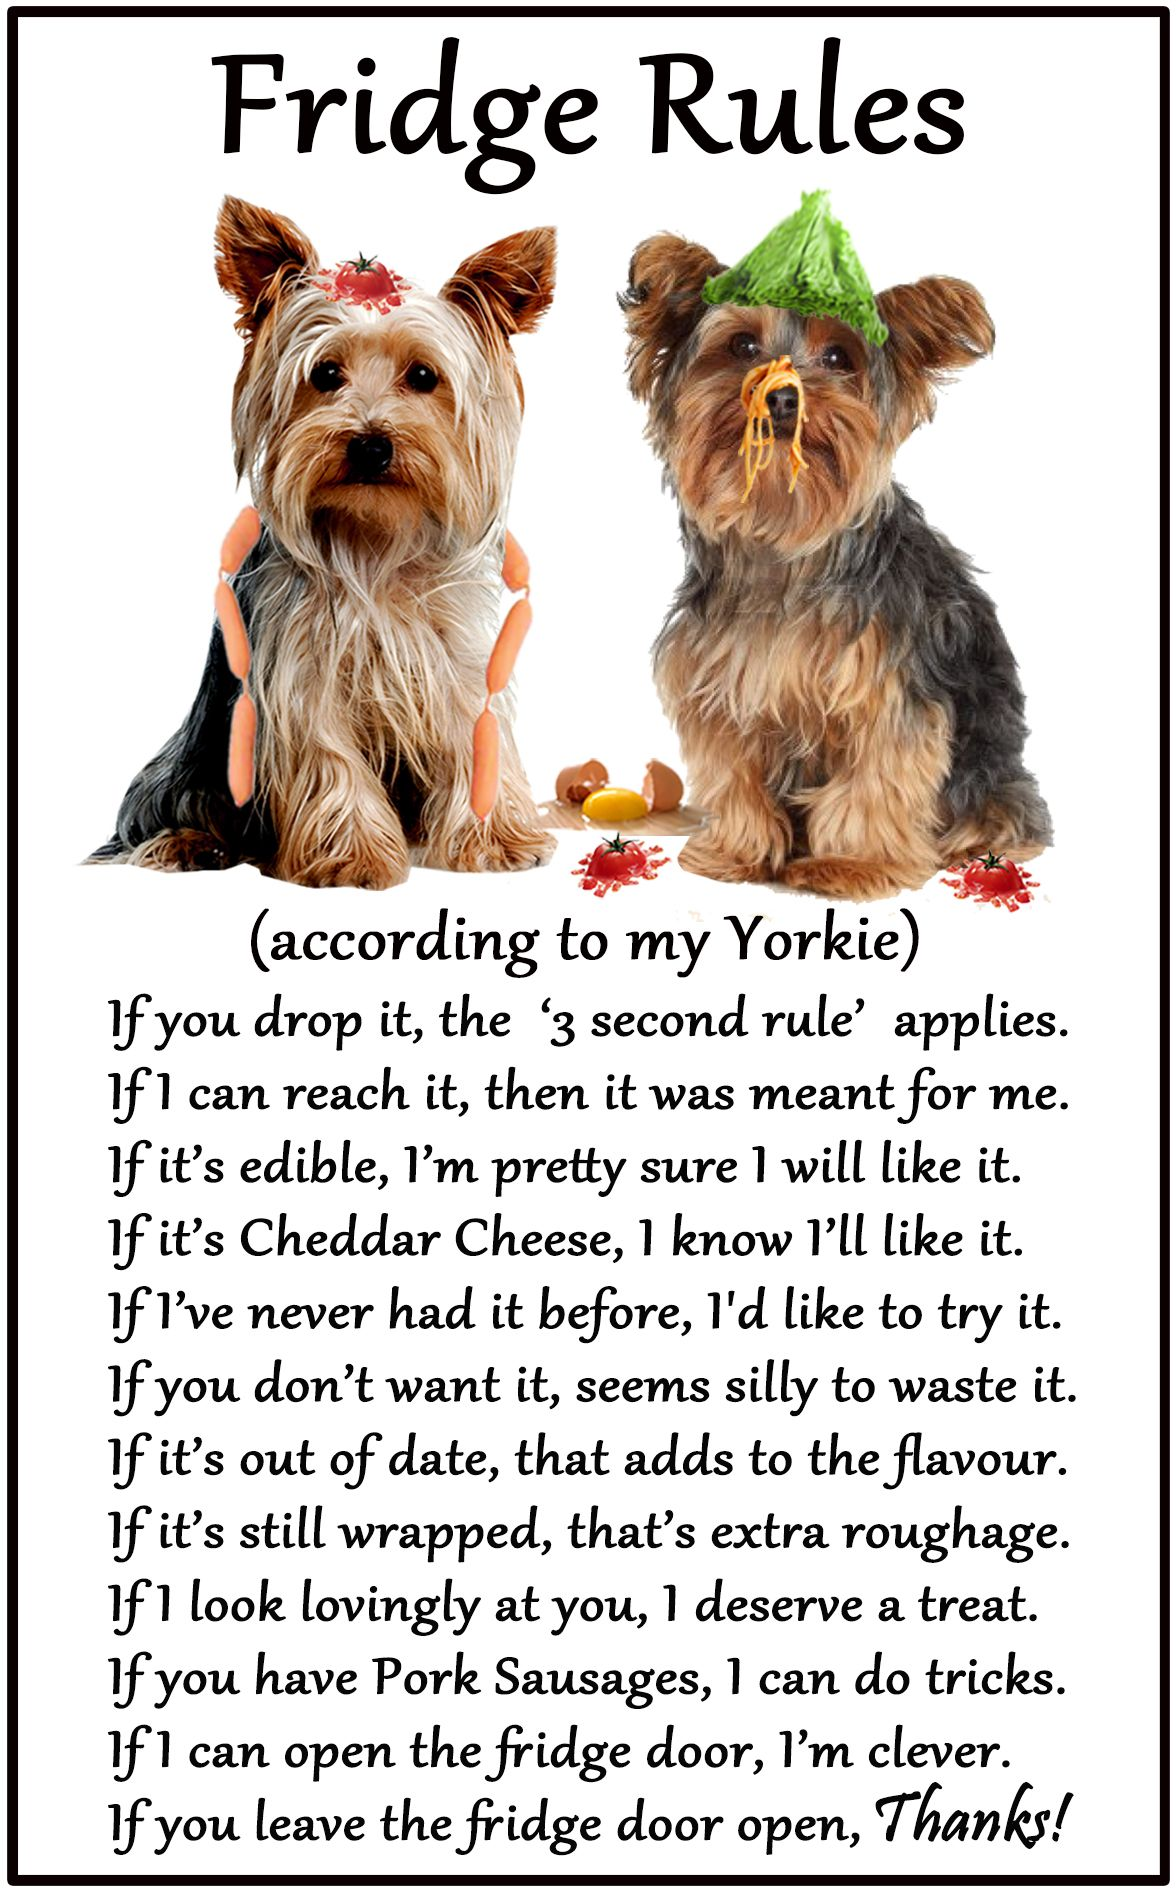 Yorkshire Terrier / Yorkie Humorous Dog Fridge